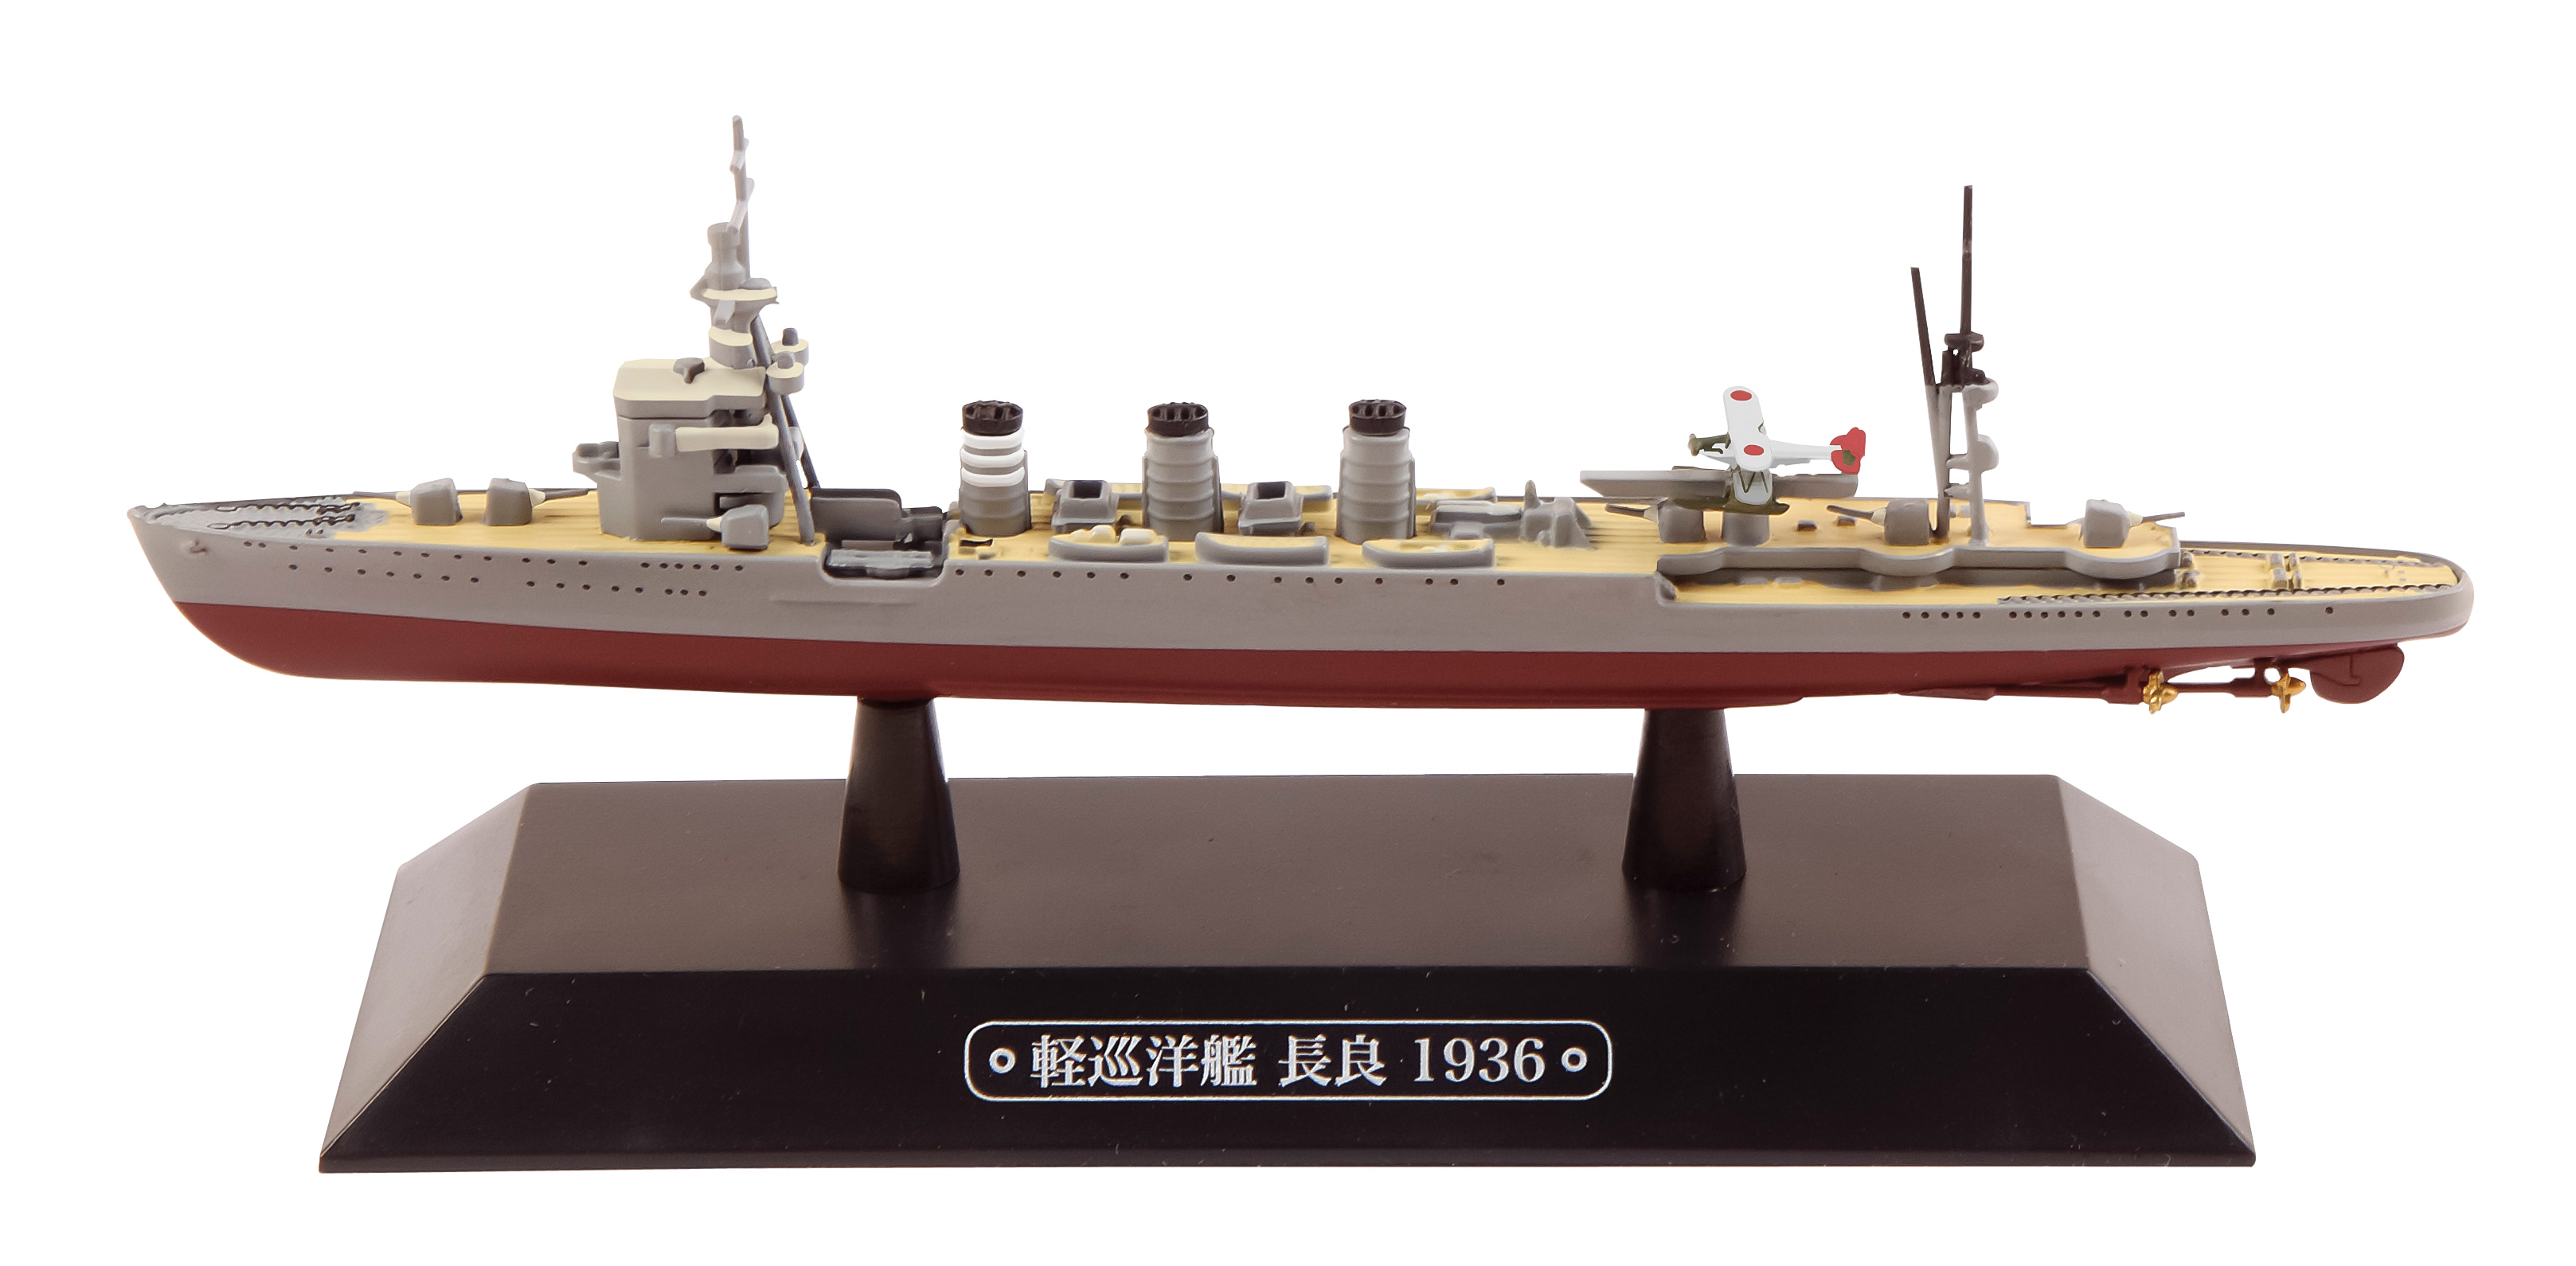 EMGC33 IJN Light Cruiser Nagara 1936 SCALE 1:1100